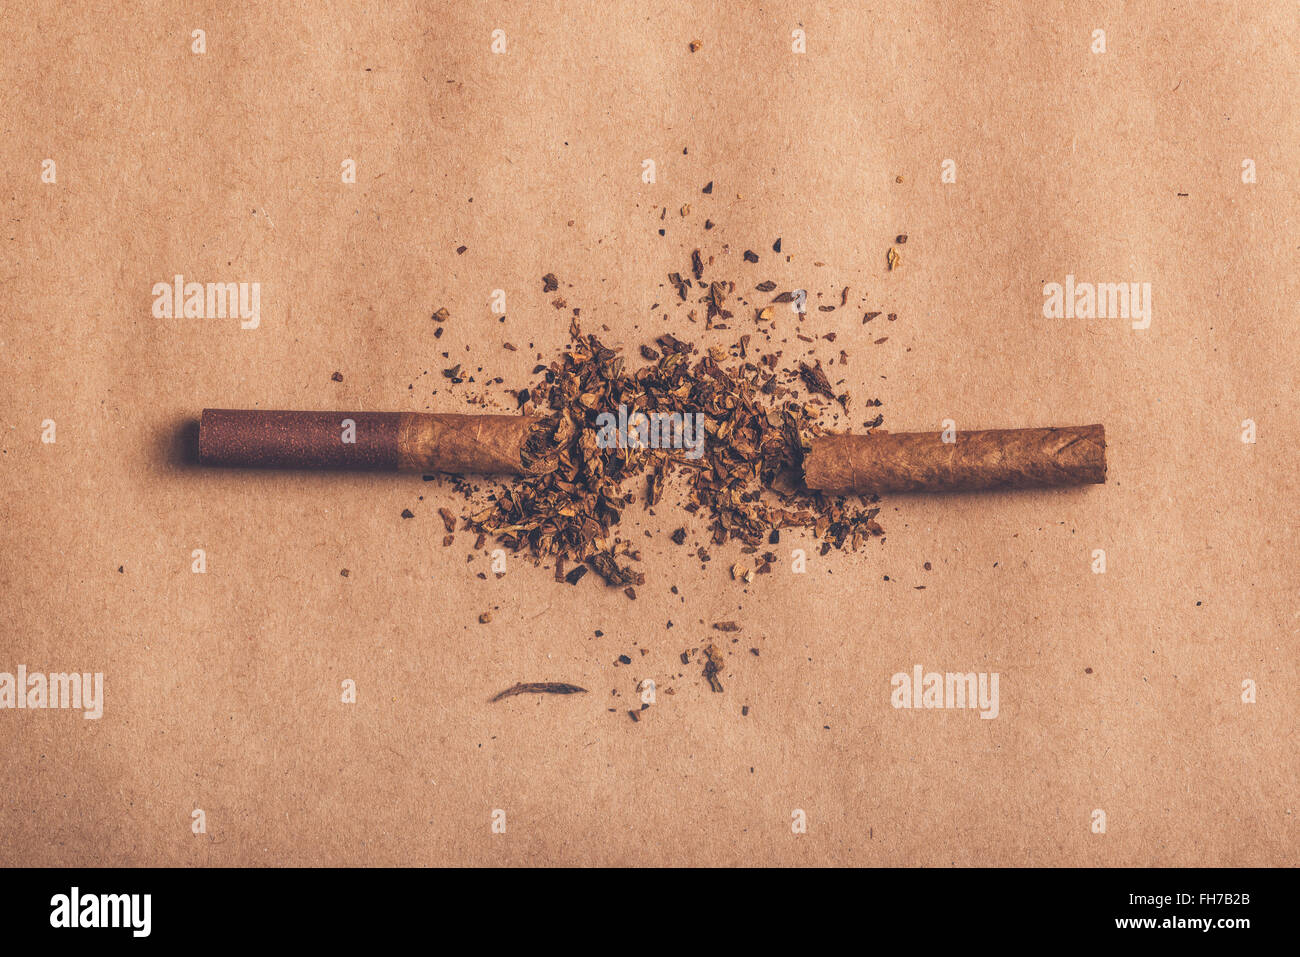 Quit smoking concept, broken cigarette top view, warm retro image tone. - Stock Image